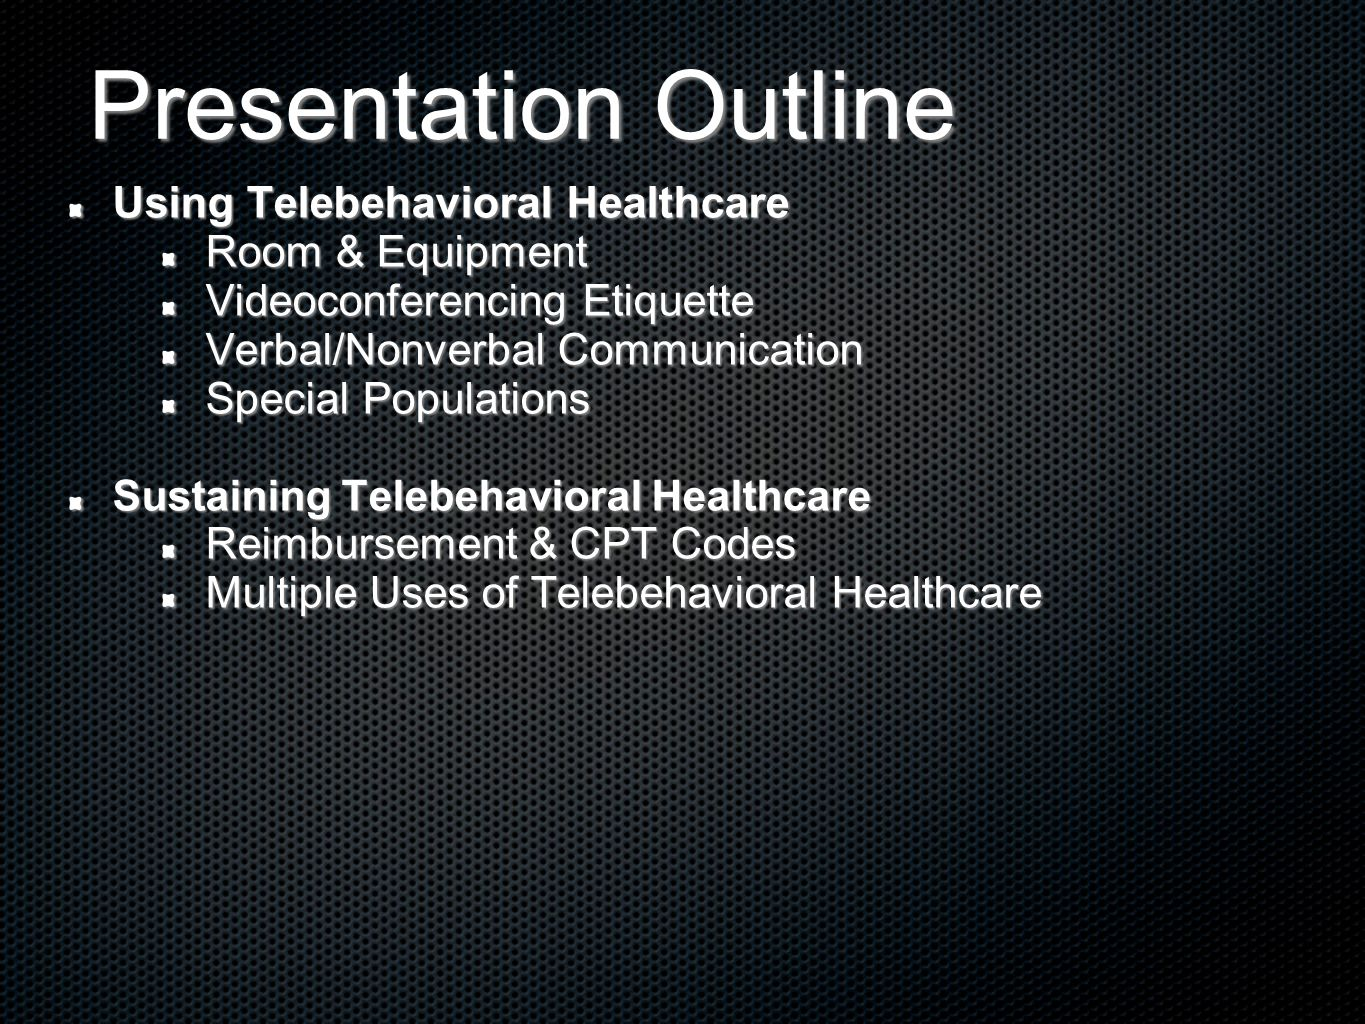 Presentation Outline Using Telebehavioral Healthcare Room & Equipment Videoconferencing Etiquette Verbal/Nonverbal Communication Special Populations S